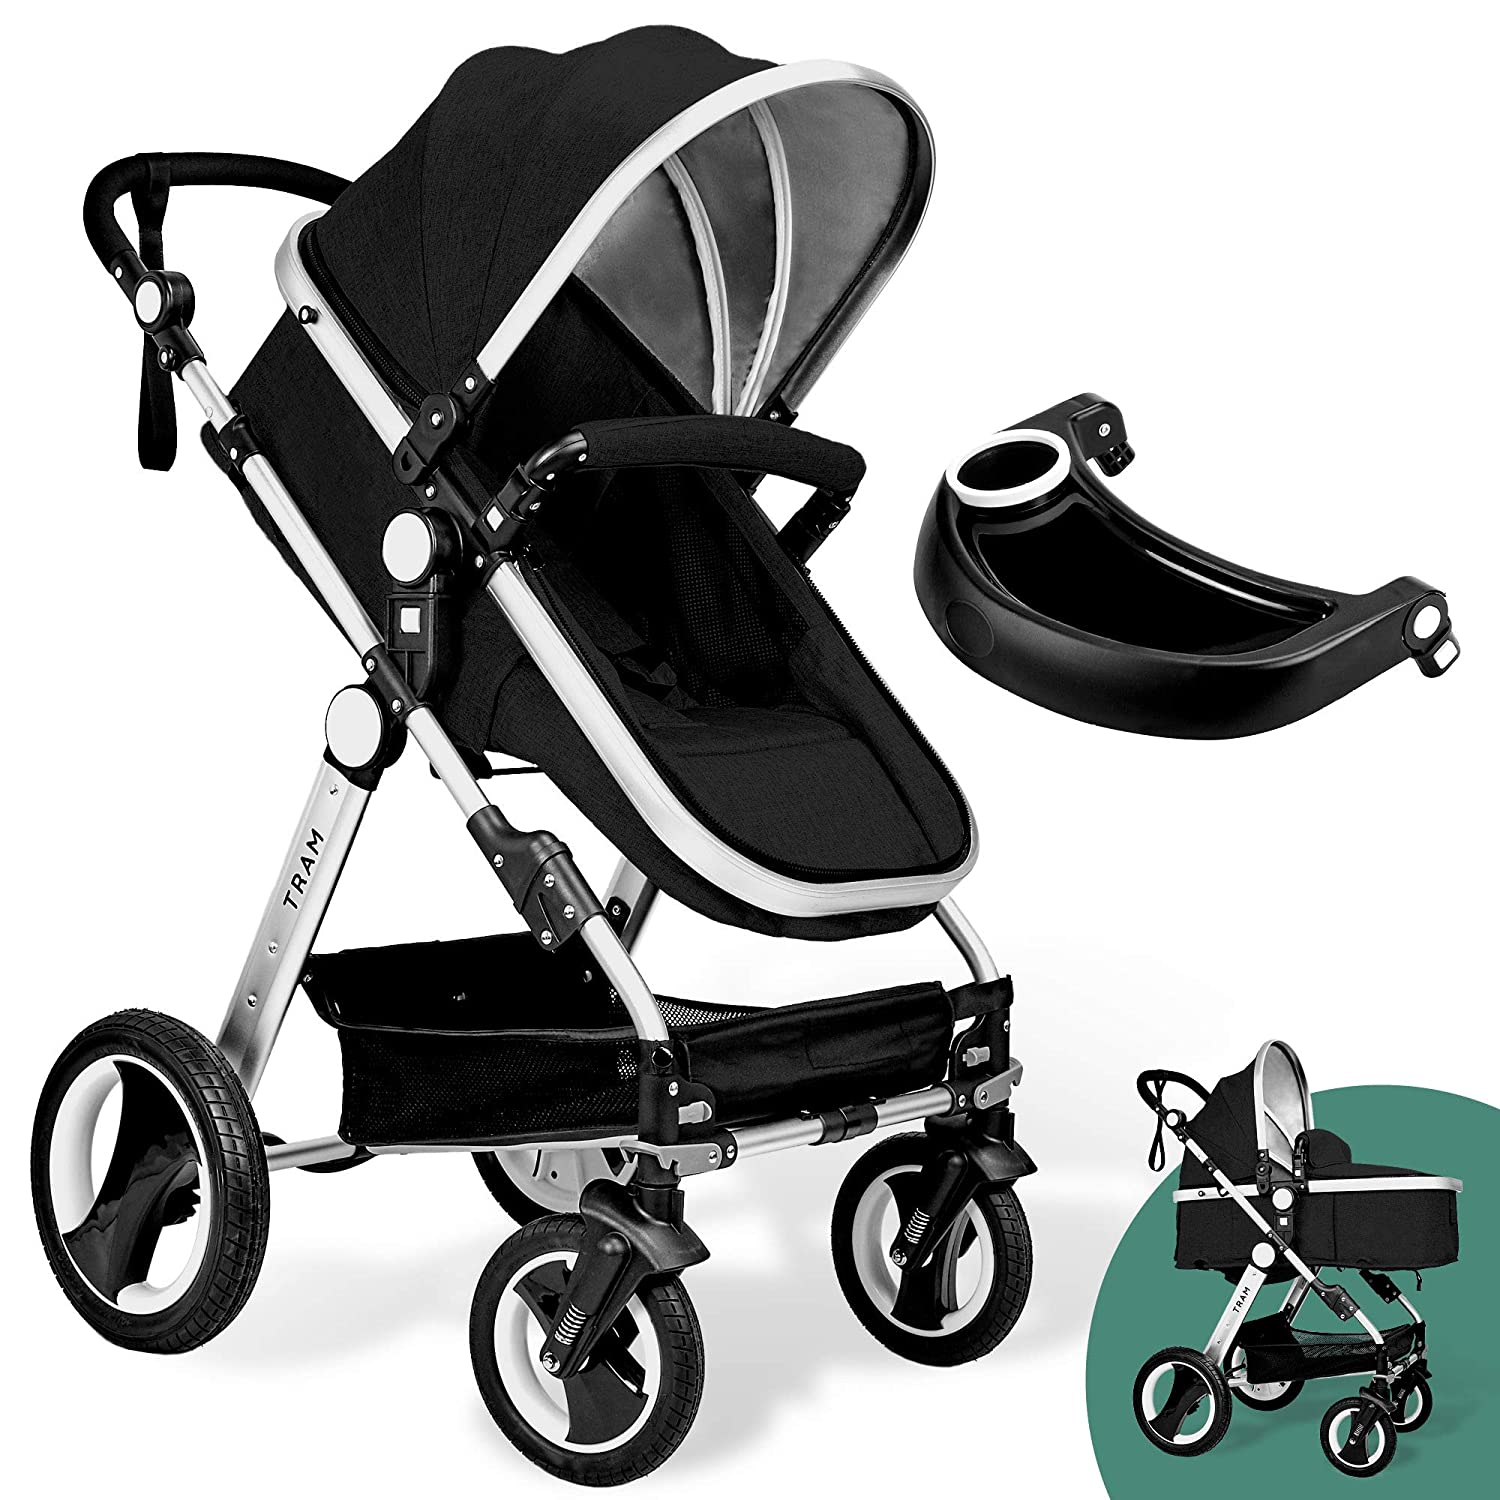 Babyroues Grey Newborn to Toddler Baby Stroller – Full Size Luxury Carriage - Infant Bassinet, Reversible Seat, Lightweight Aluminum Frame, Easy Compact Fold, All Terrain Wheels BABYROUÉS